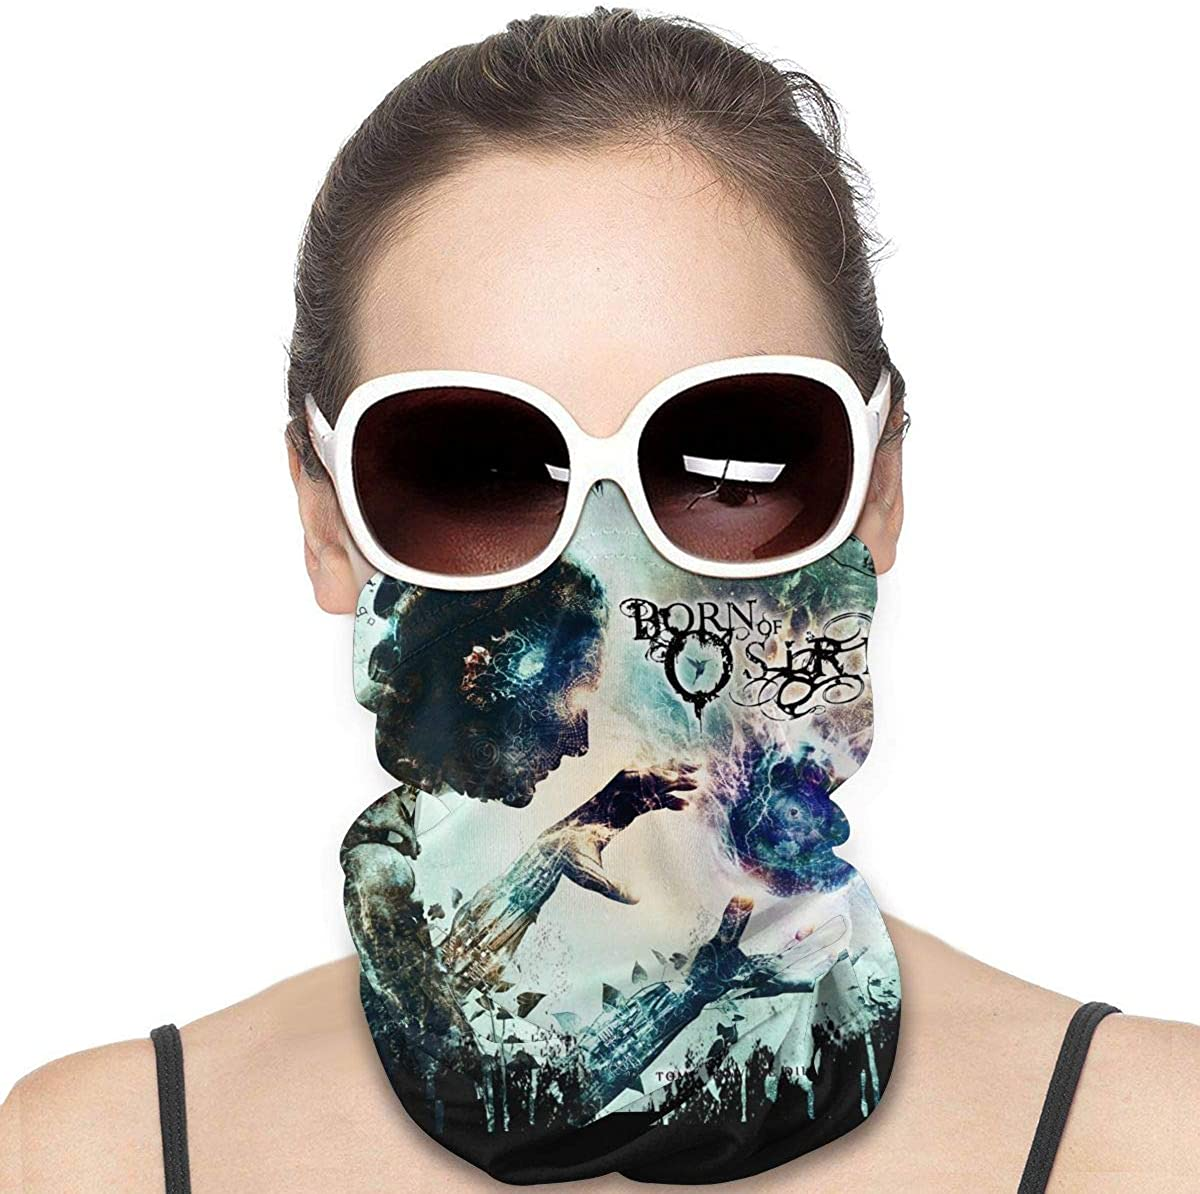 Variety Head Scarf Breathable Face Bandanas Scarf Neck Gaiter For Unisex Outdoor Windproof Sports Bandanas Ski Bandanas Scarf Bandana-Born Of Osiris